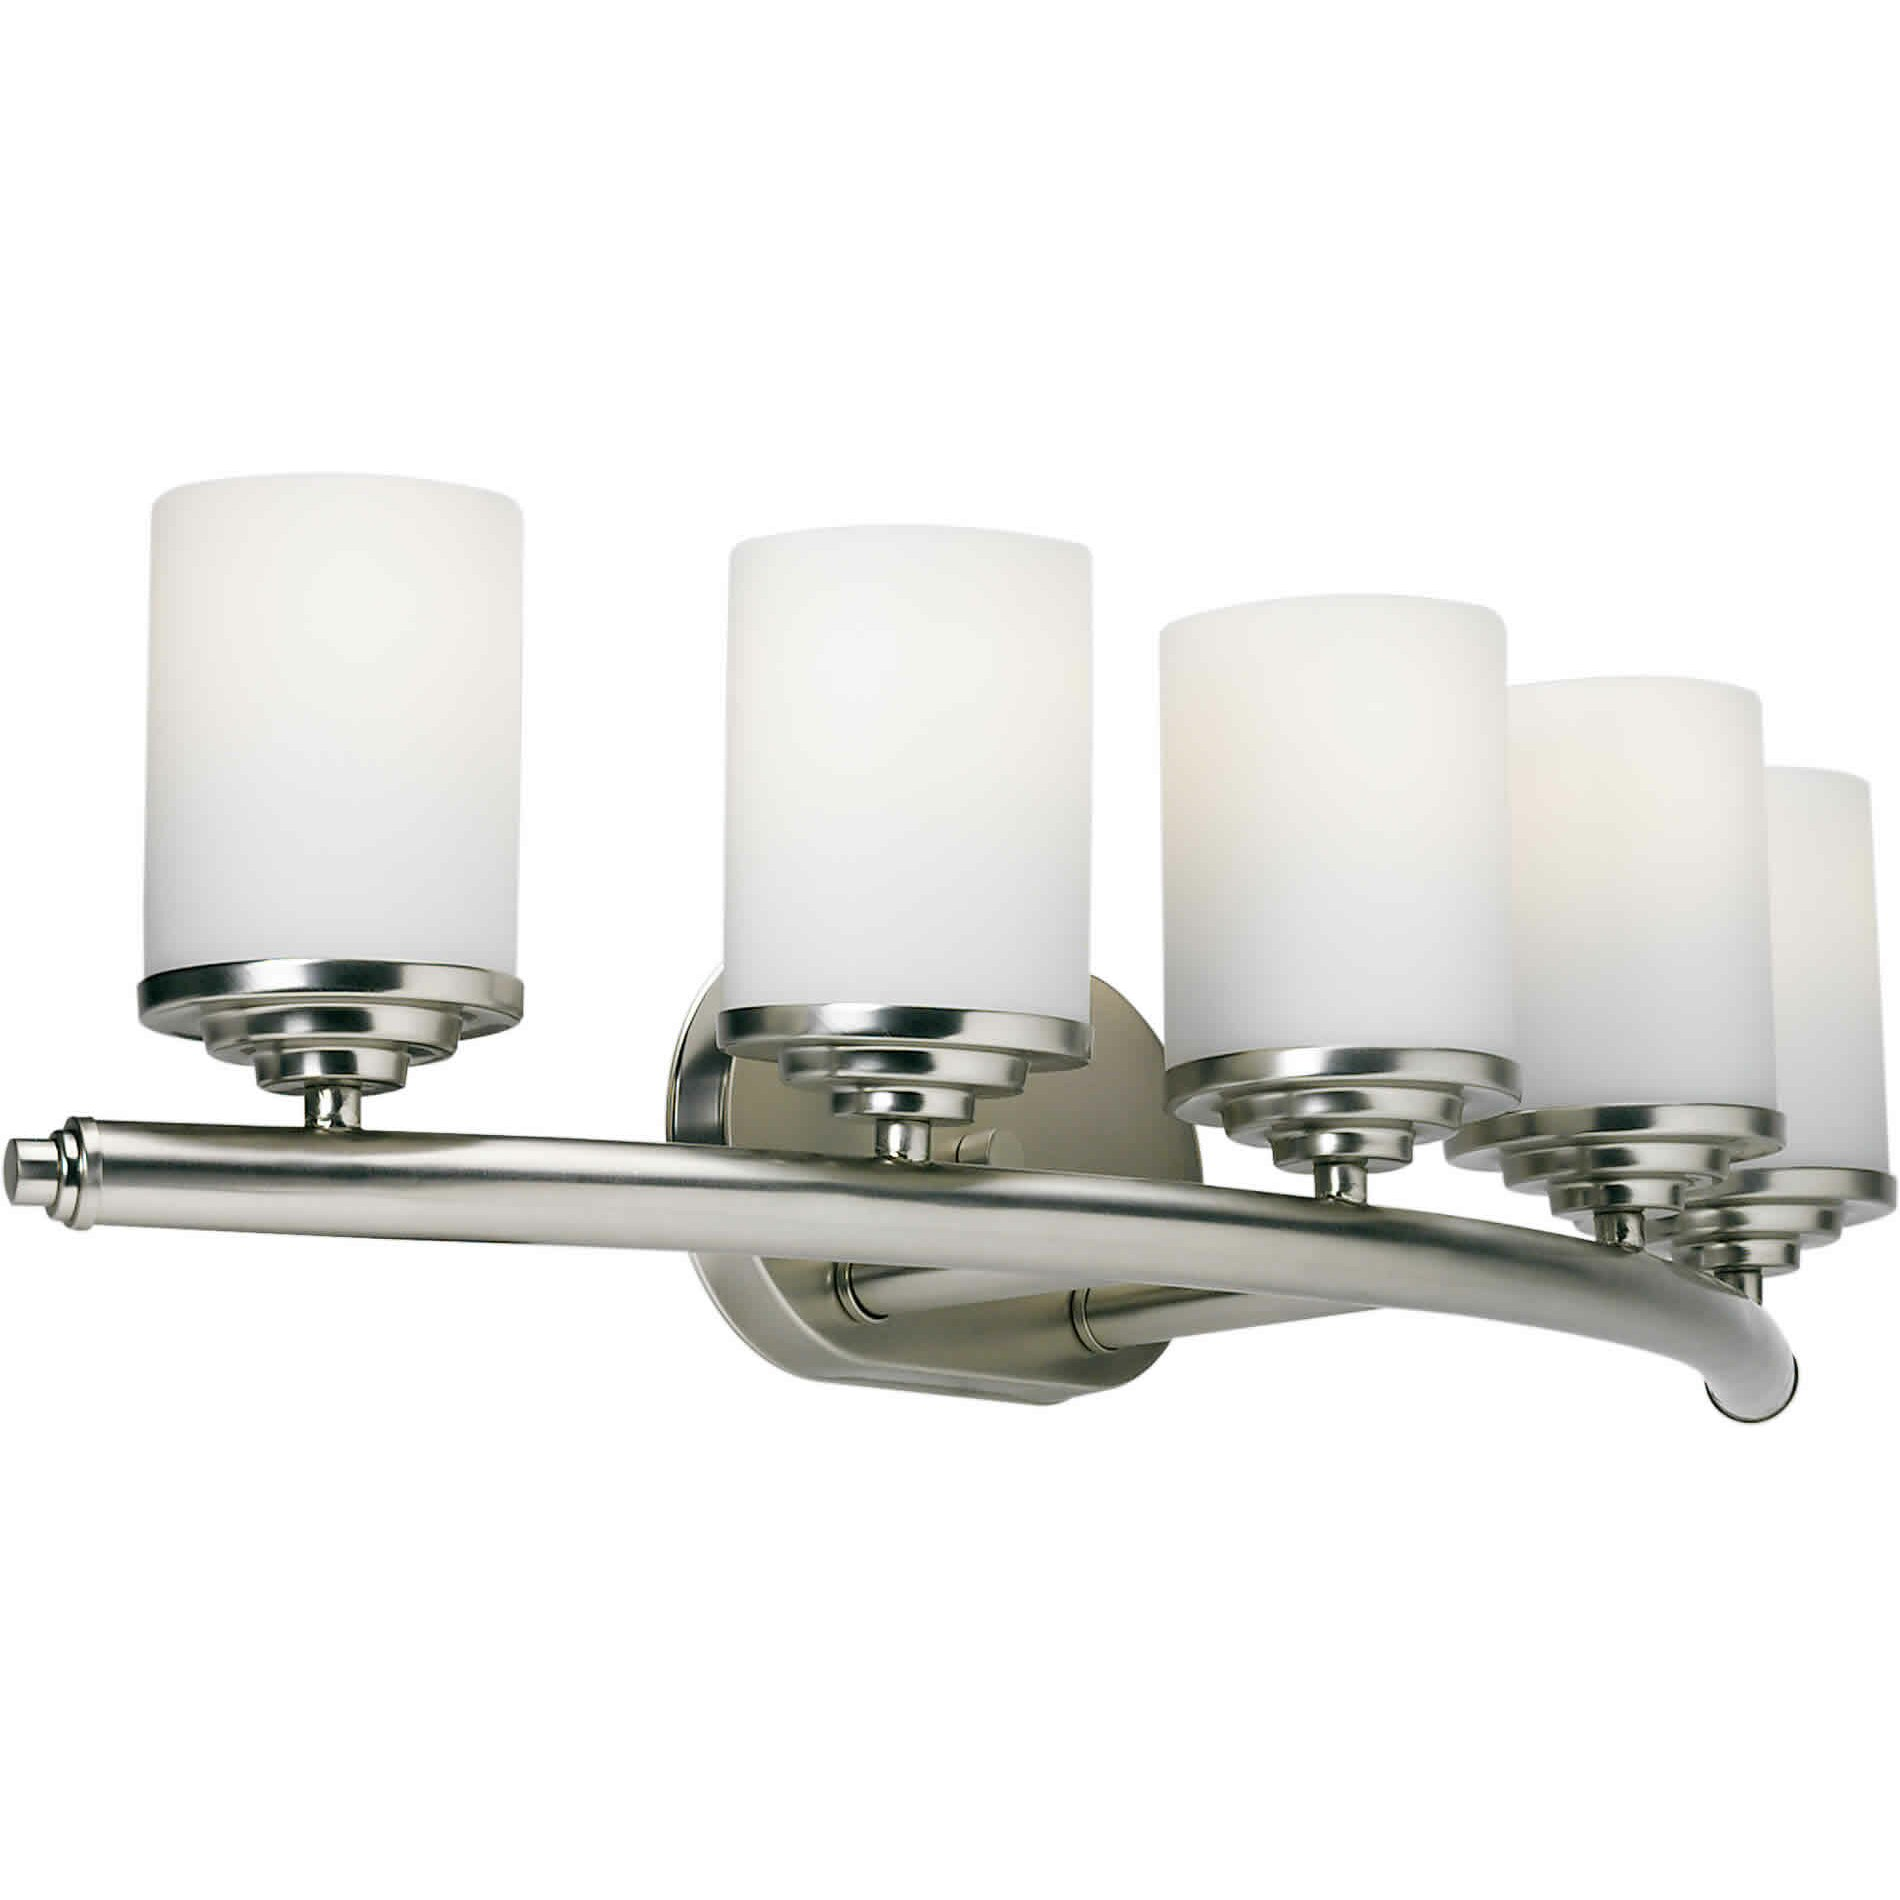 Forte Lighting 5 Light Vanity Light & Reviews | Wayfair